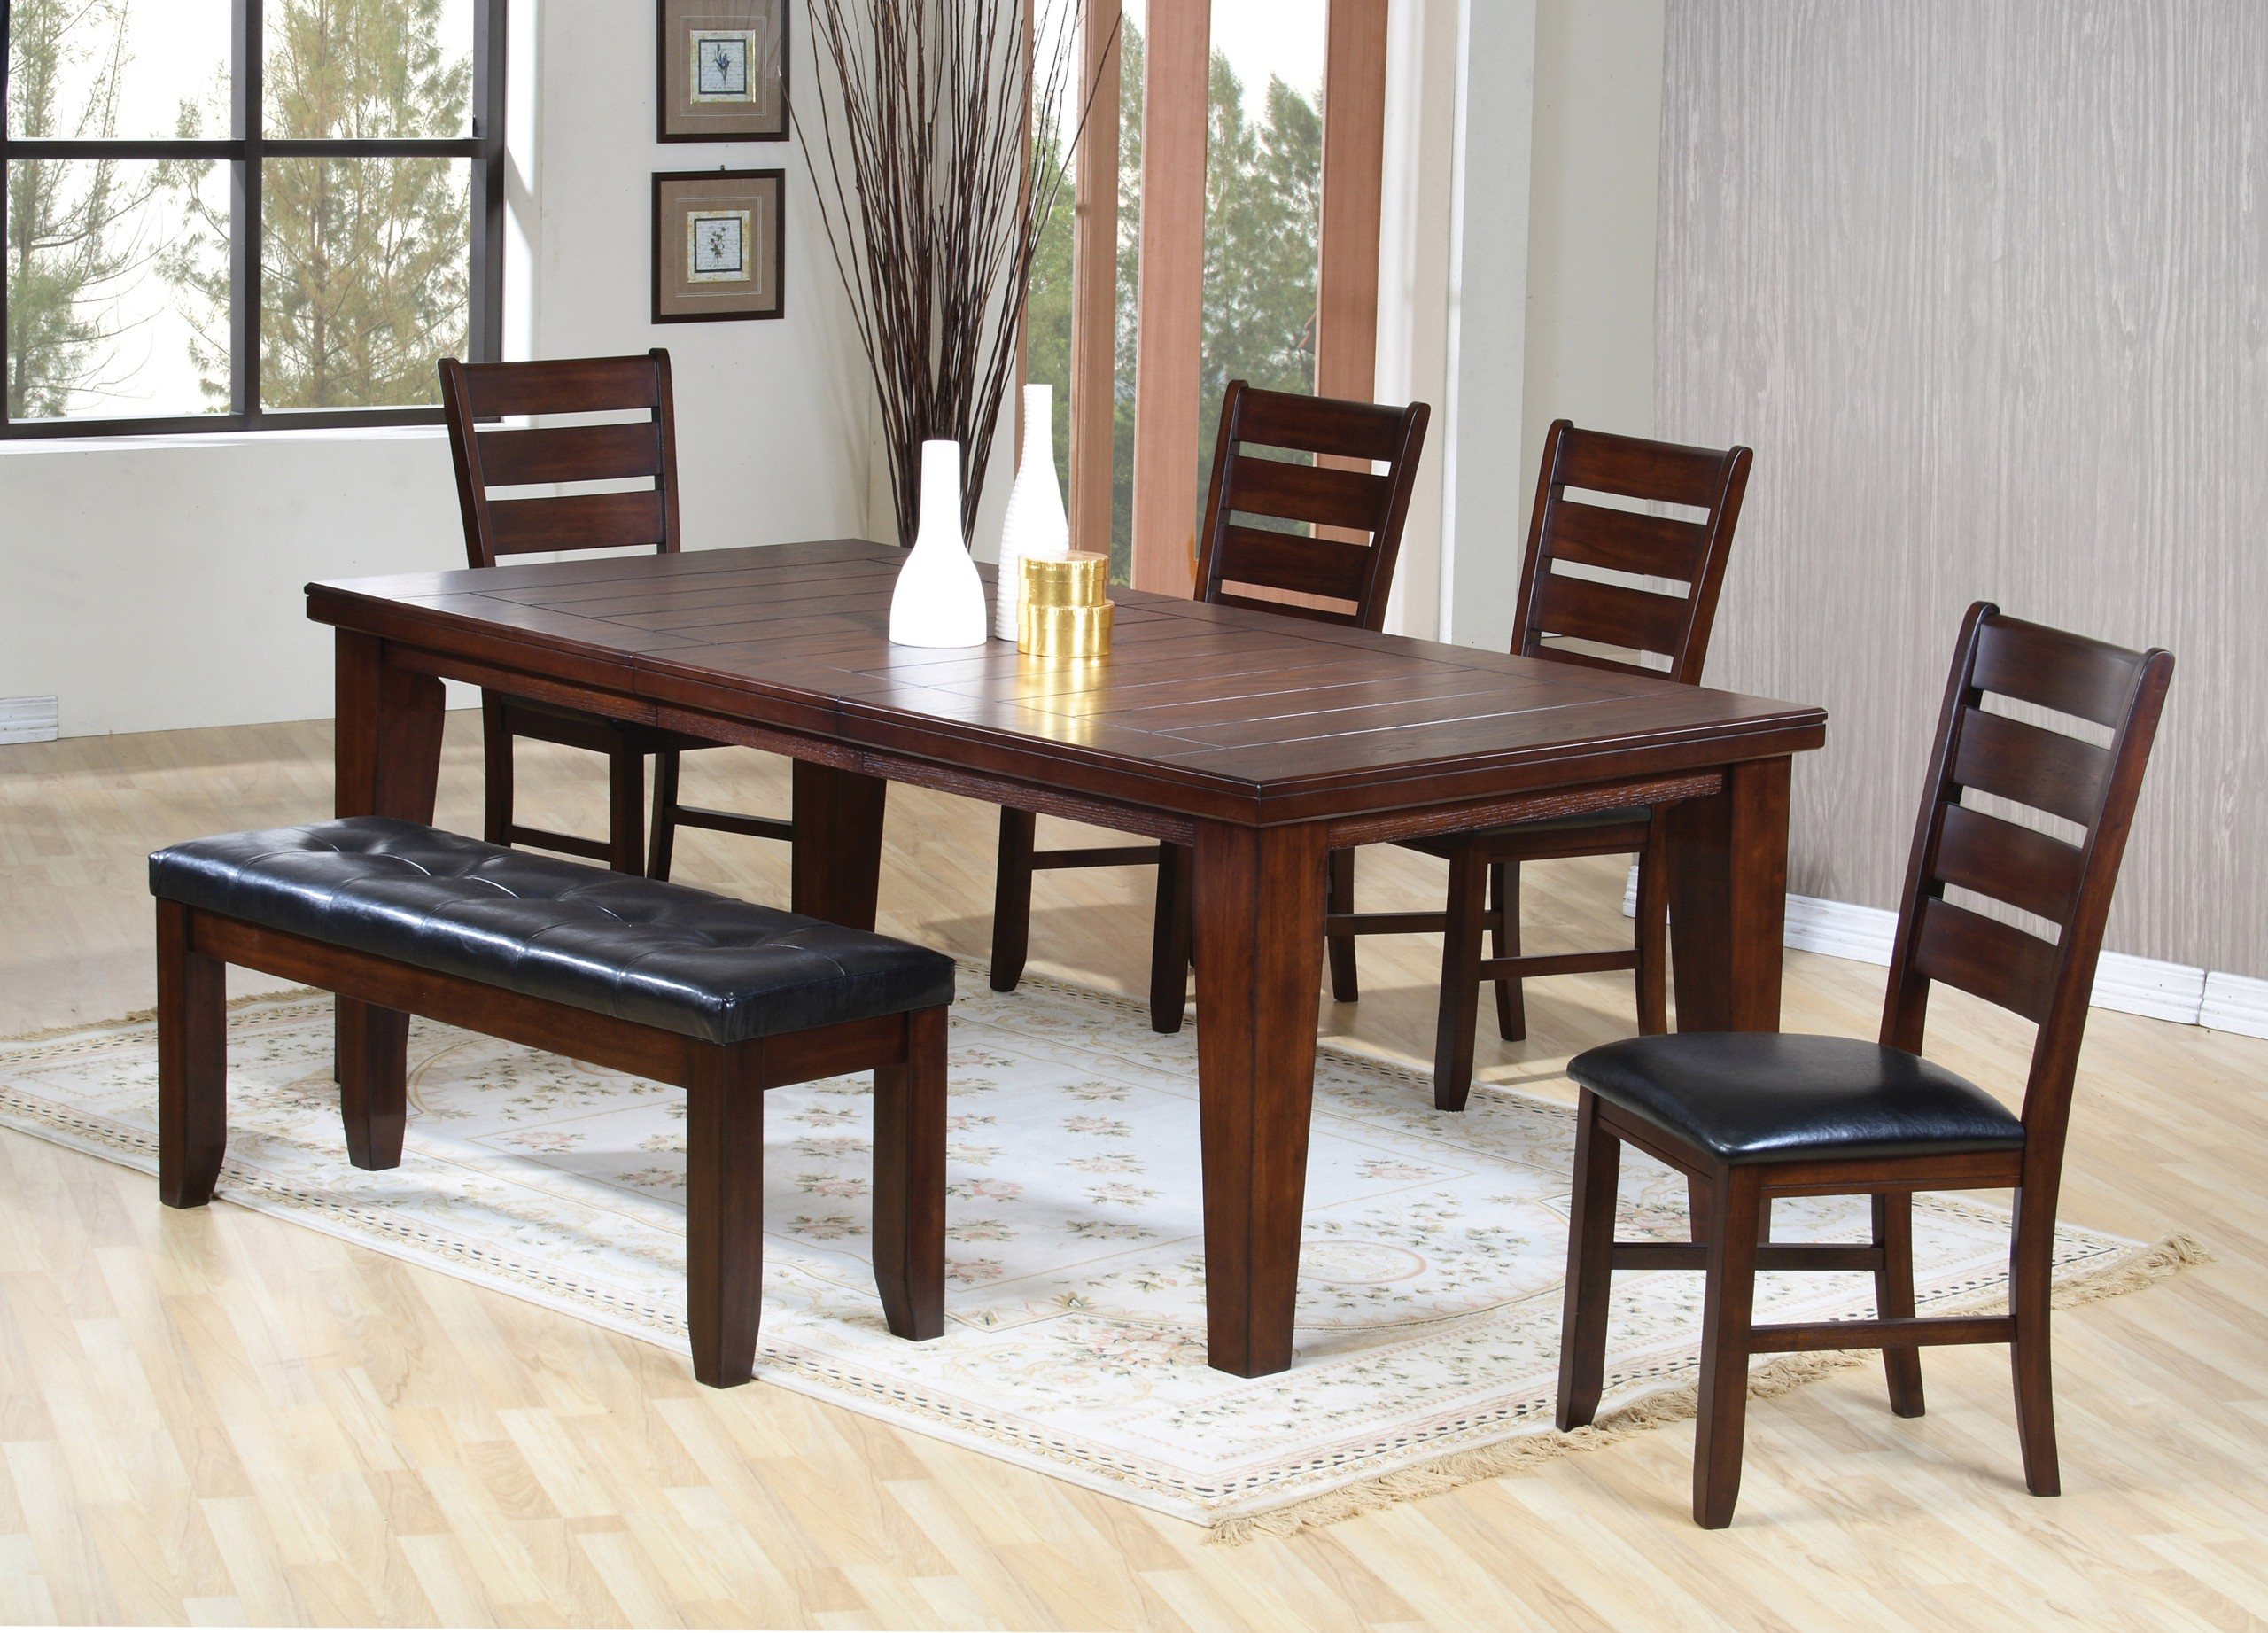 6pc Dining Table \u0026 Chairs Set with Ladder Back Dark Oak Finish & Dining Table Benches With Backs - Foter